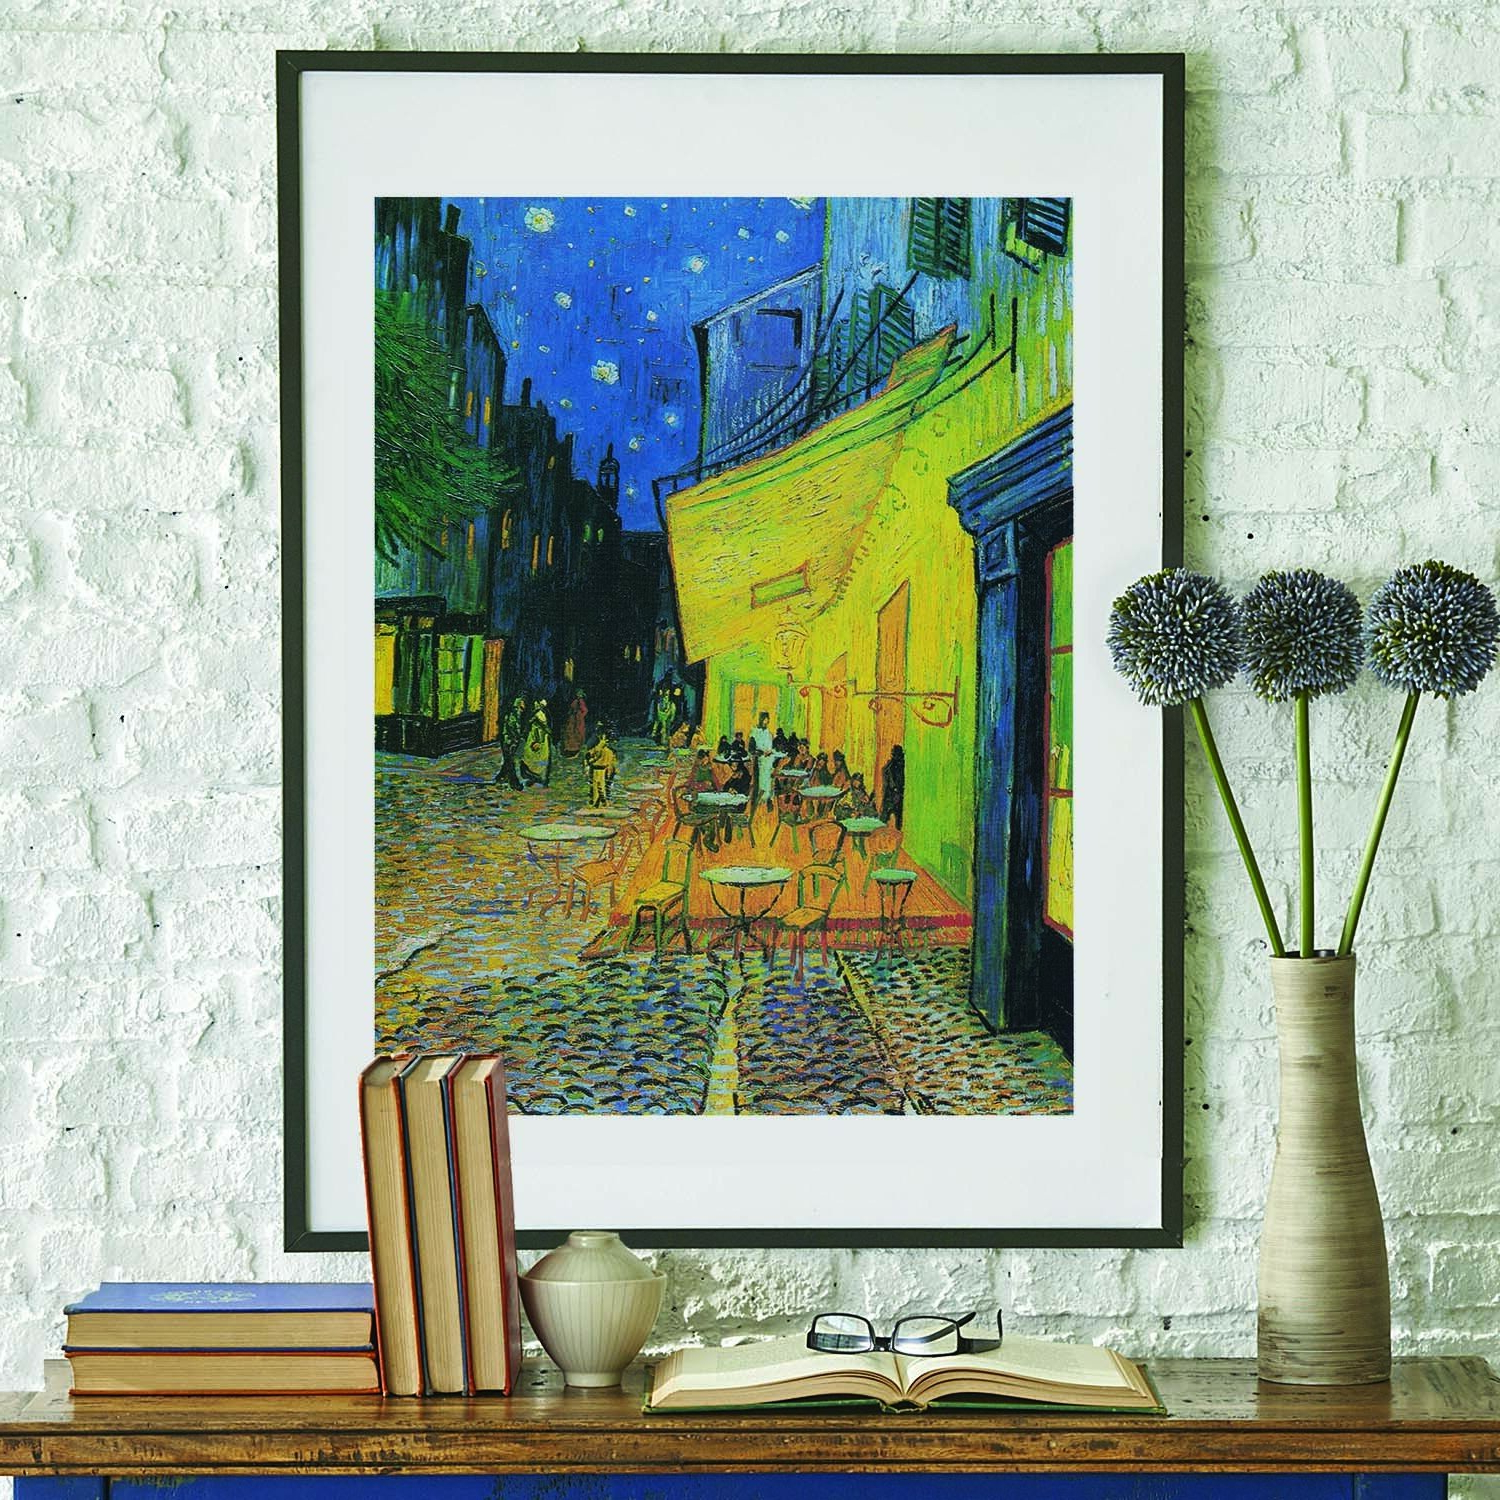 Spasova Café Terrence At Night 1888vincent Van Gogh Painting Wall Decal Regarding 2020 Blended Fabric Van Gogh Terrace Wall Hangings (View 16 of 20)